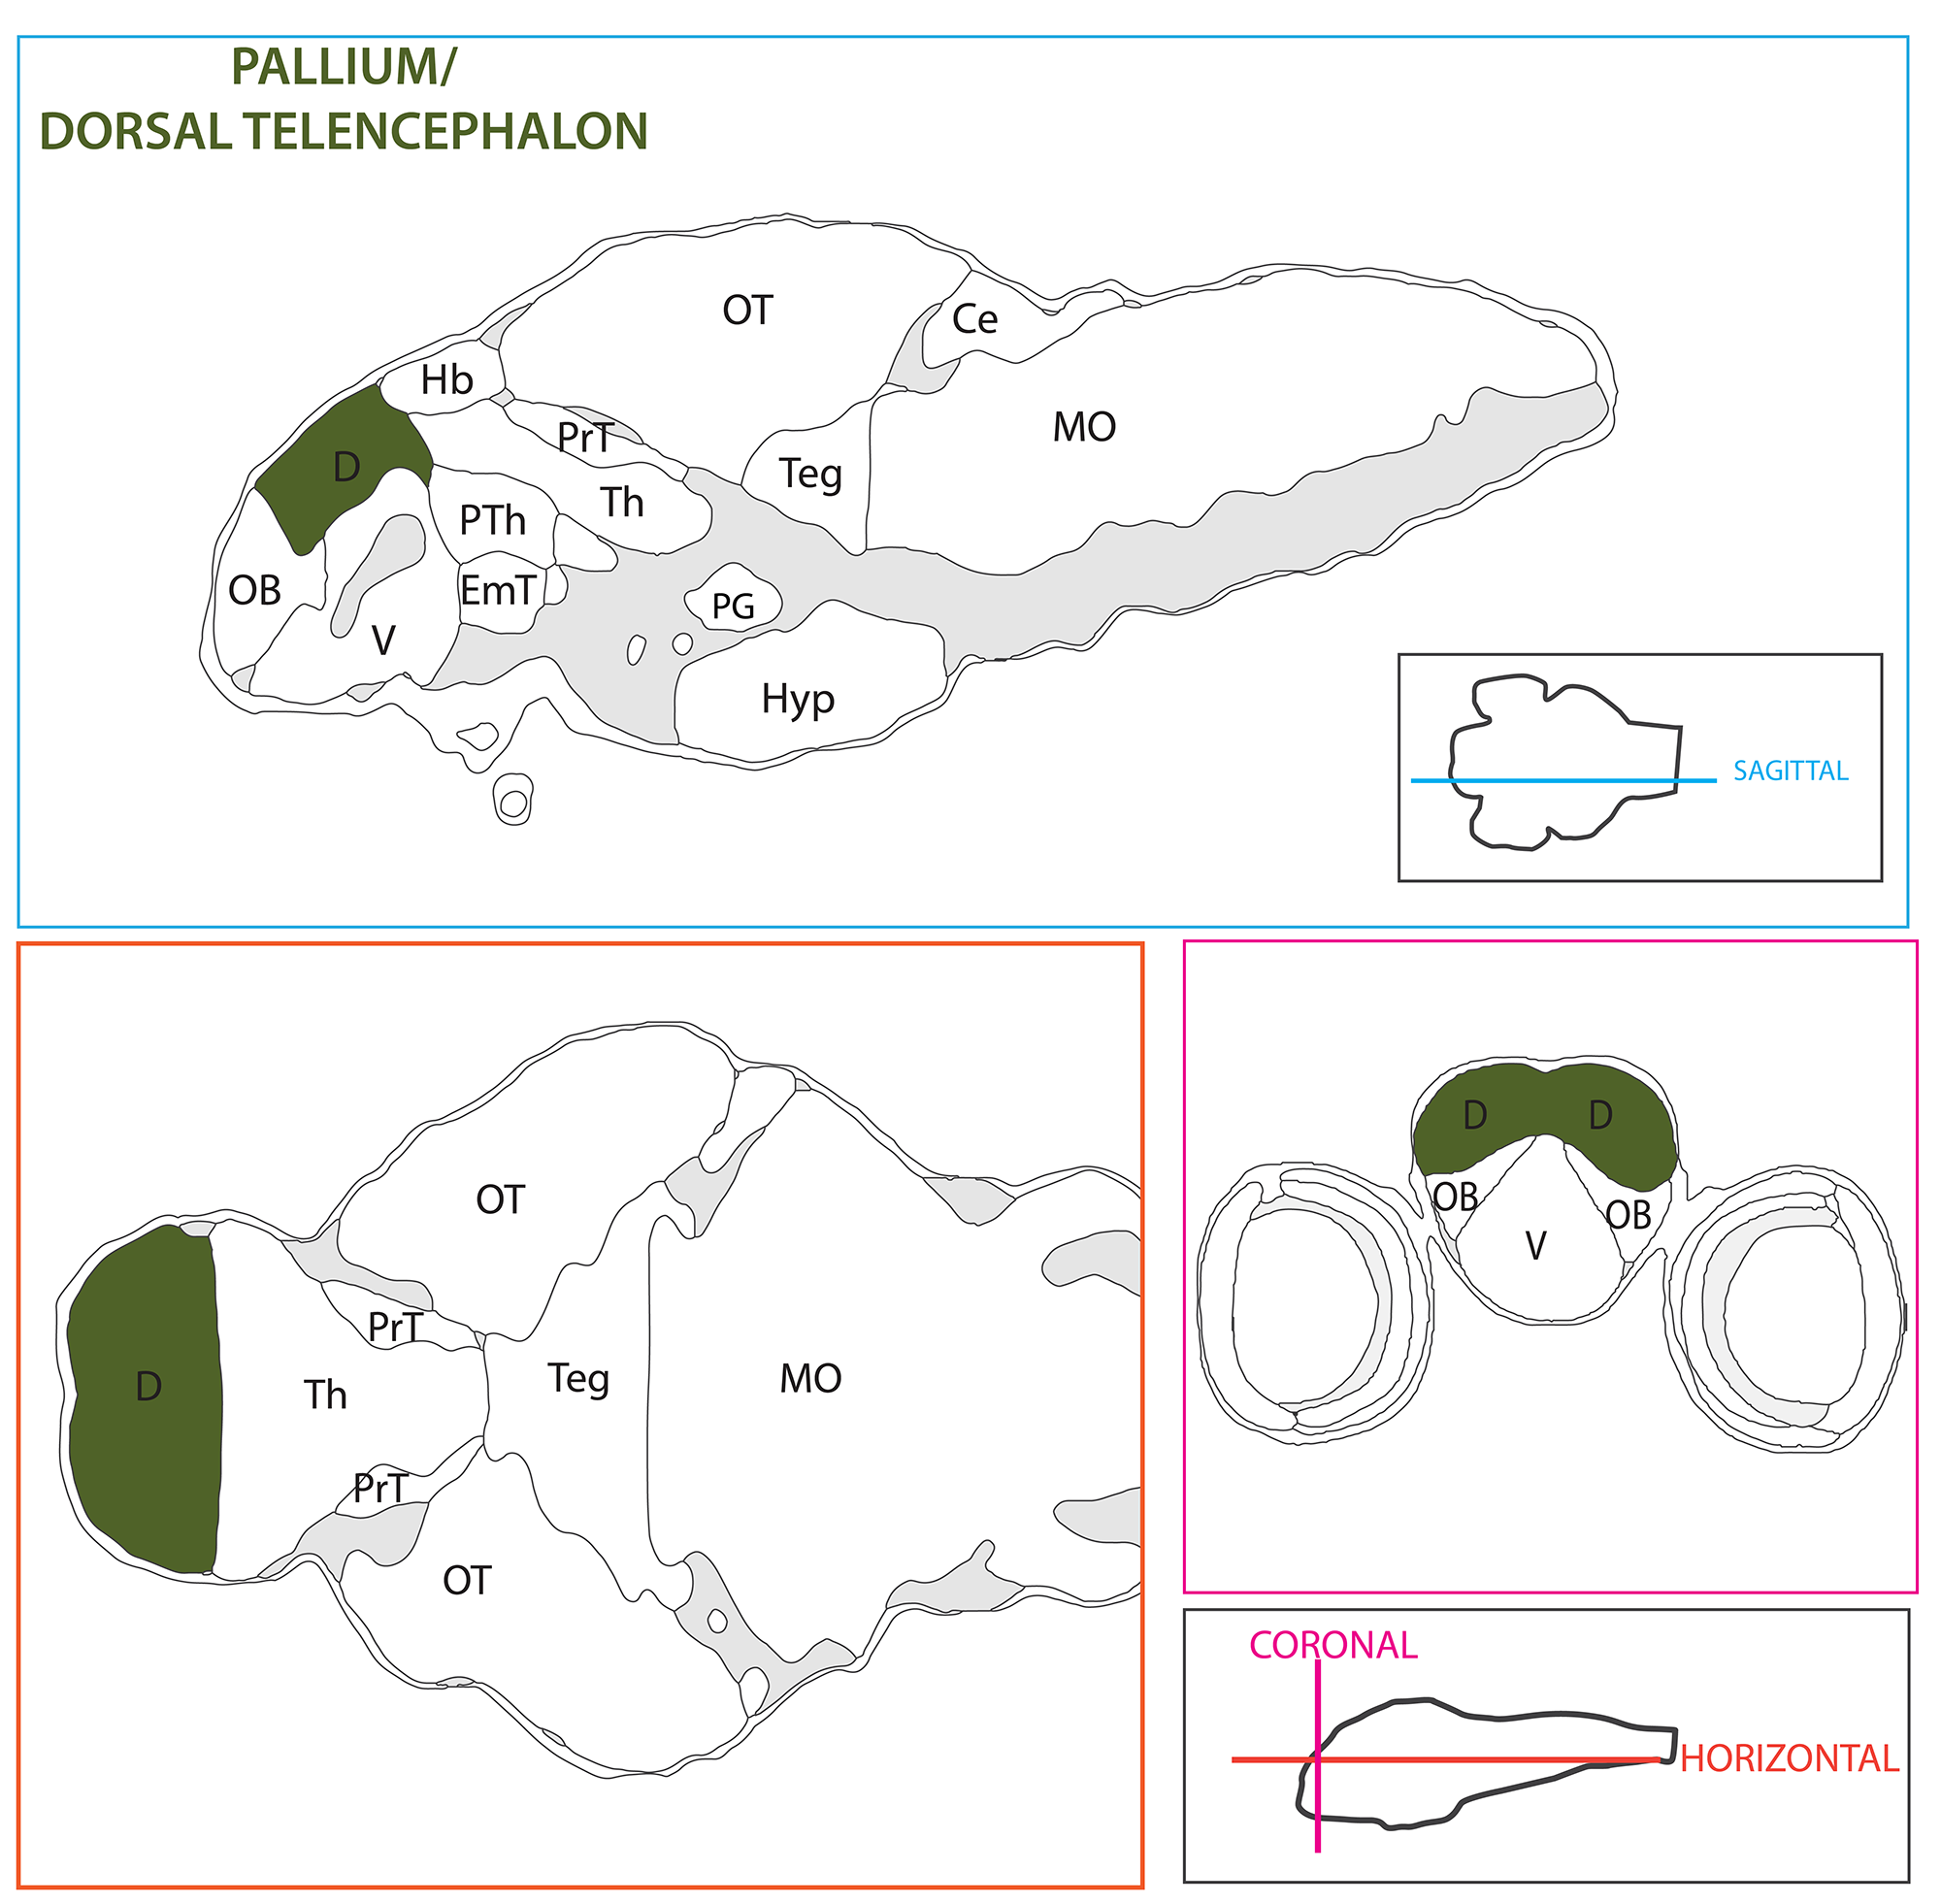 Schematic showing the position of the pallium in sagittal, horizontal and coronal sections through the zebrafish brain.  Based on the anatomical segmentation of 3 day old zebrafish larval brain by Thomas Müller, Olaf Ronneberger, Wolfgang Driever and colleagues. For details see Ronneberger et al., Nat. Meth. 2012 and   http://vibez.informatik.uni-freiburg.de     Abbreviations: Ce, cerebellar plate; D, dorsal telencephalon/pallium; E, epiphysis; EmT, eminentia thalami; Hb, habenula; Hyp, hypothalamus; MO, medulla oblongata; OB, olfactory bulb; OT, optic tectum; PG, preglomerular complex; PO, preoptic area;PrT, pretectum; PTd, posterior tuberculum dorsal part; PTh, prethalamus; PTv posterior tuberculum ventral part; Teg, tegmentum; Th, thalamus; TS, torus semicircularis; V, ventral telencephalon/subpallium; Va, valvula cerebelli.